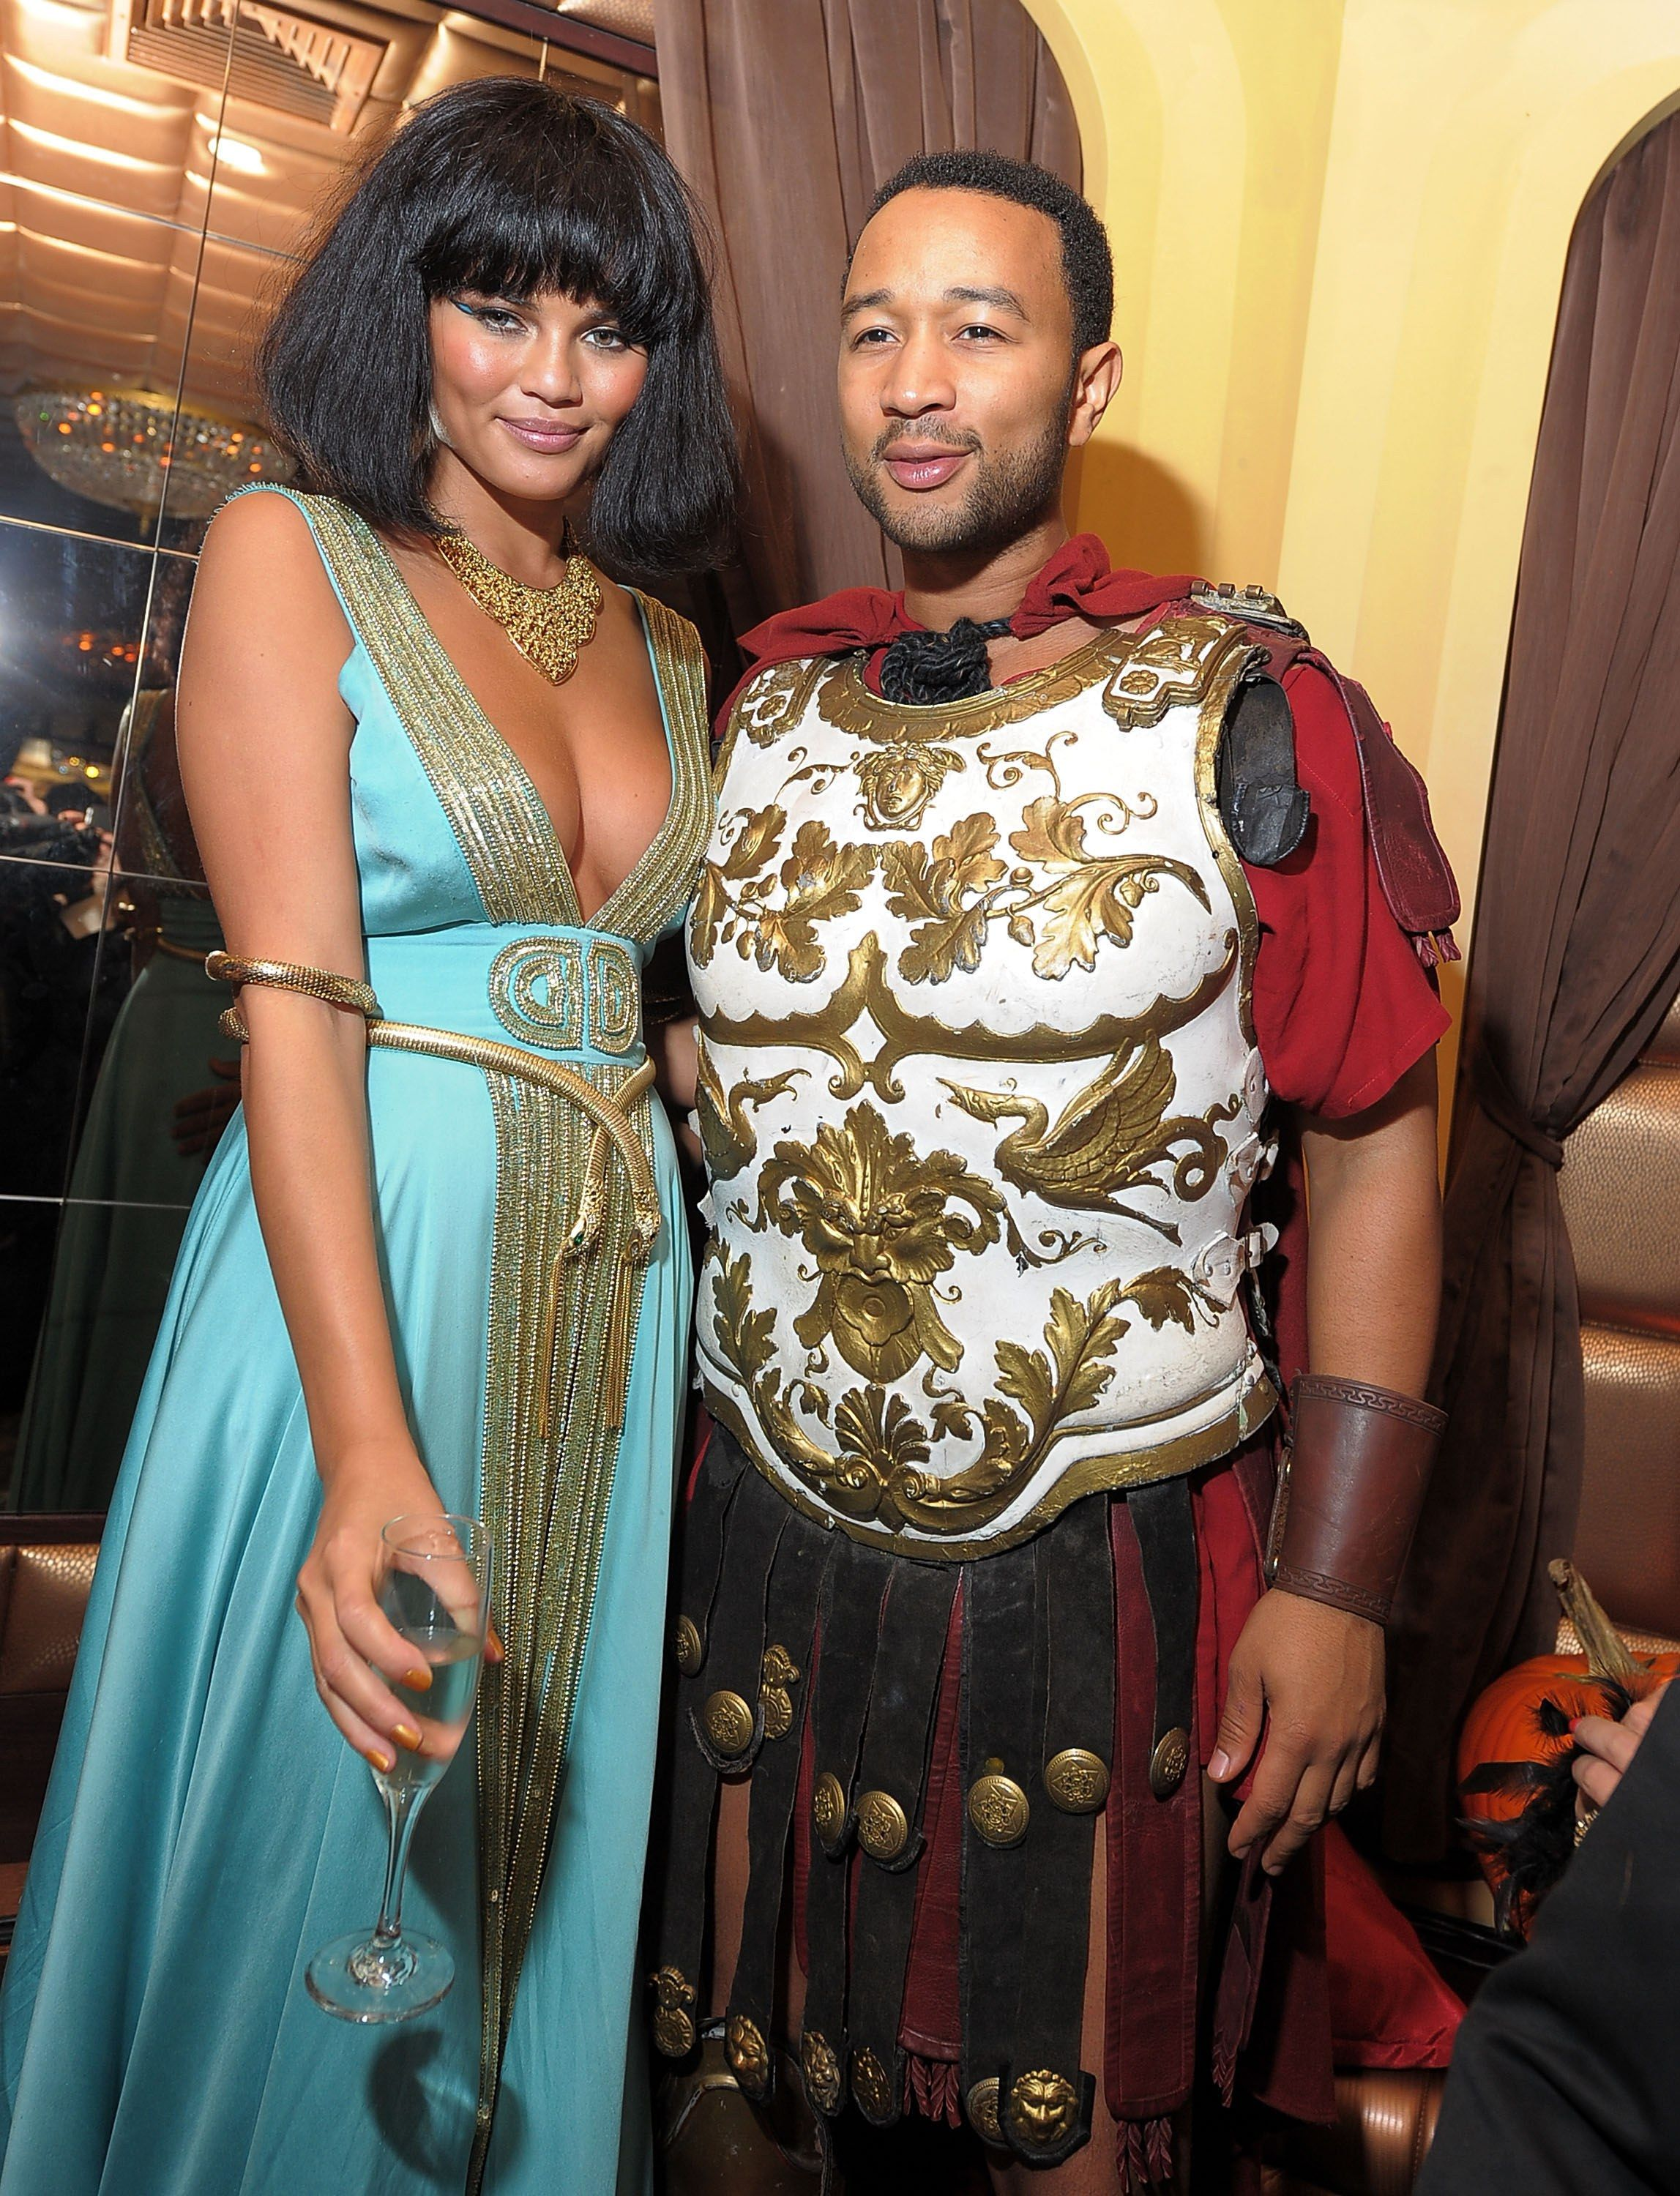 11 halloween couples costume ideas, courtesy of your favorite